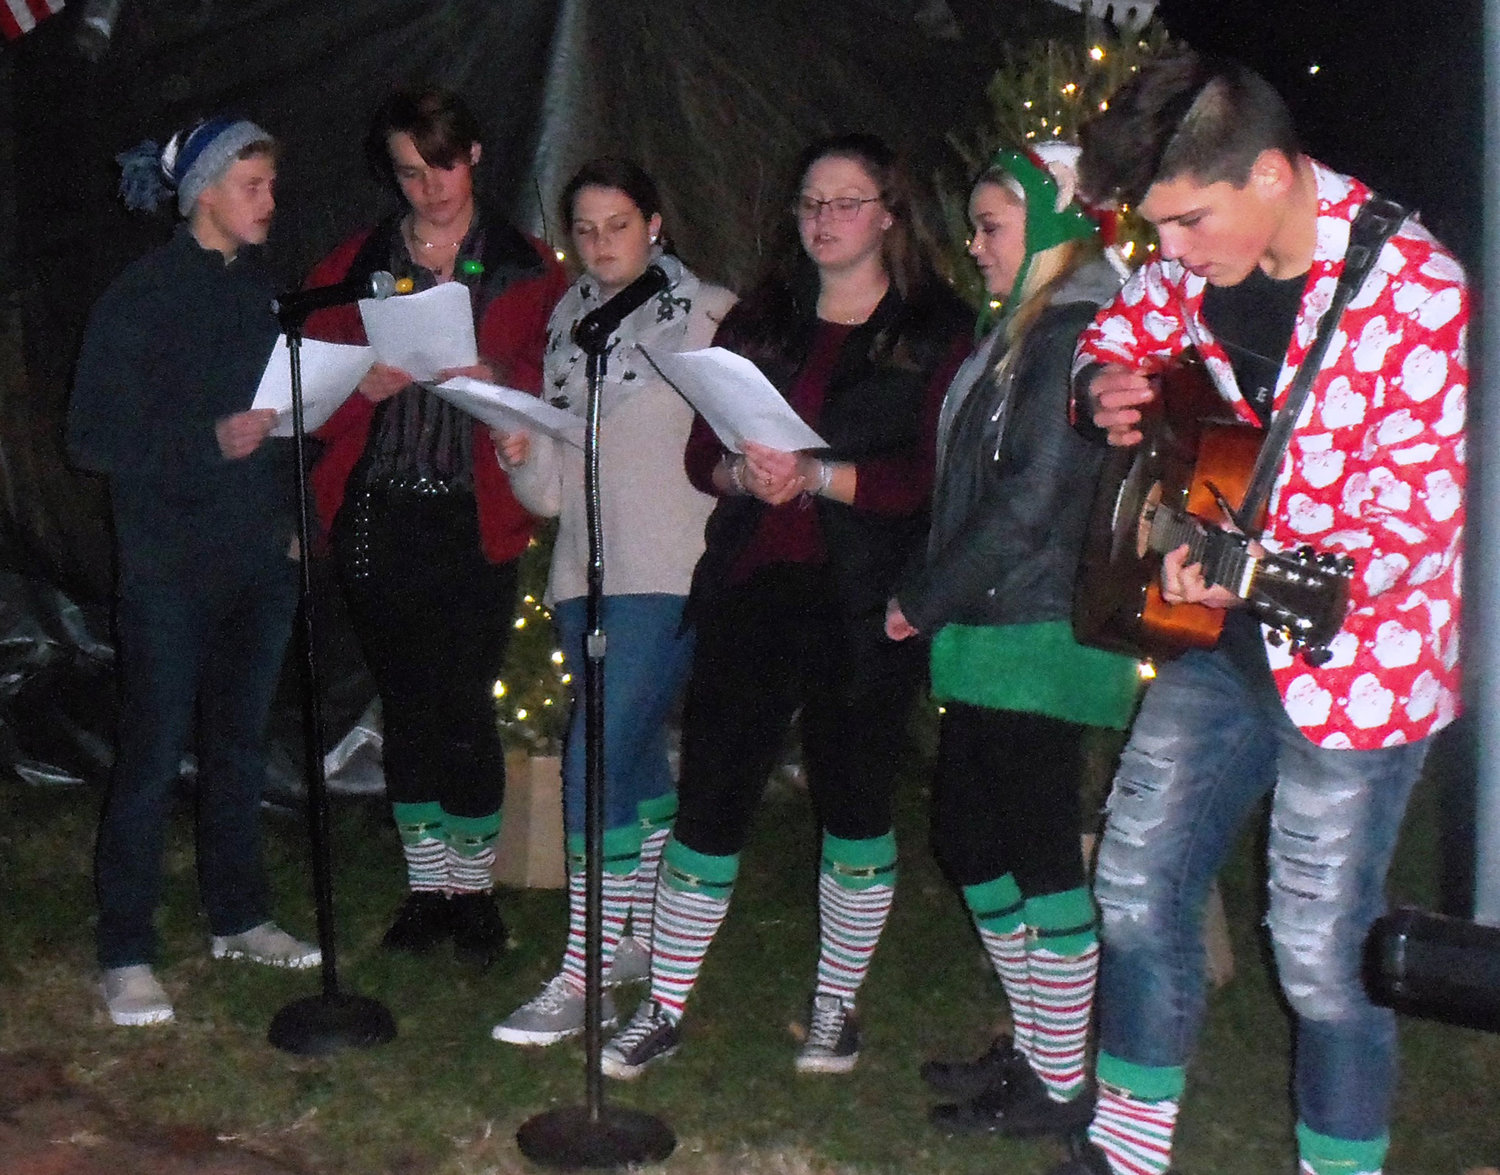 Middletown First Church of God's youth group performed musical numbers during the borough's tree-lighting ceremony on Saturday night, Nov. 30.